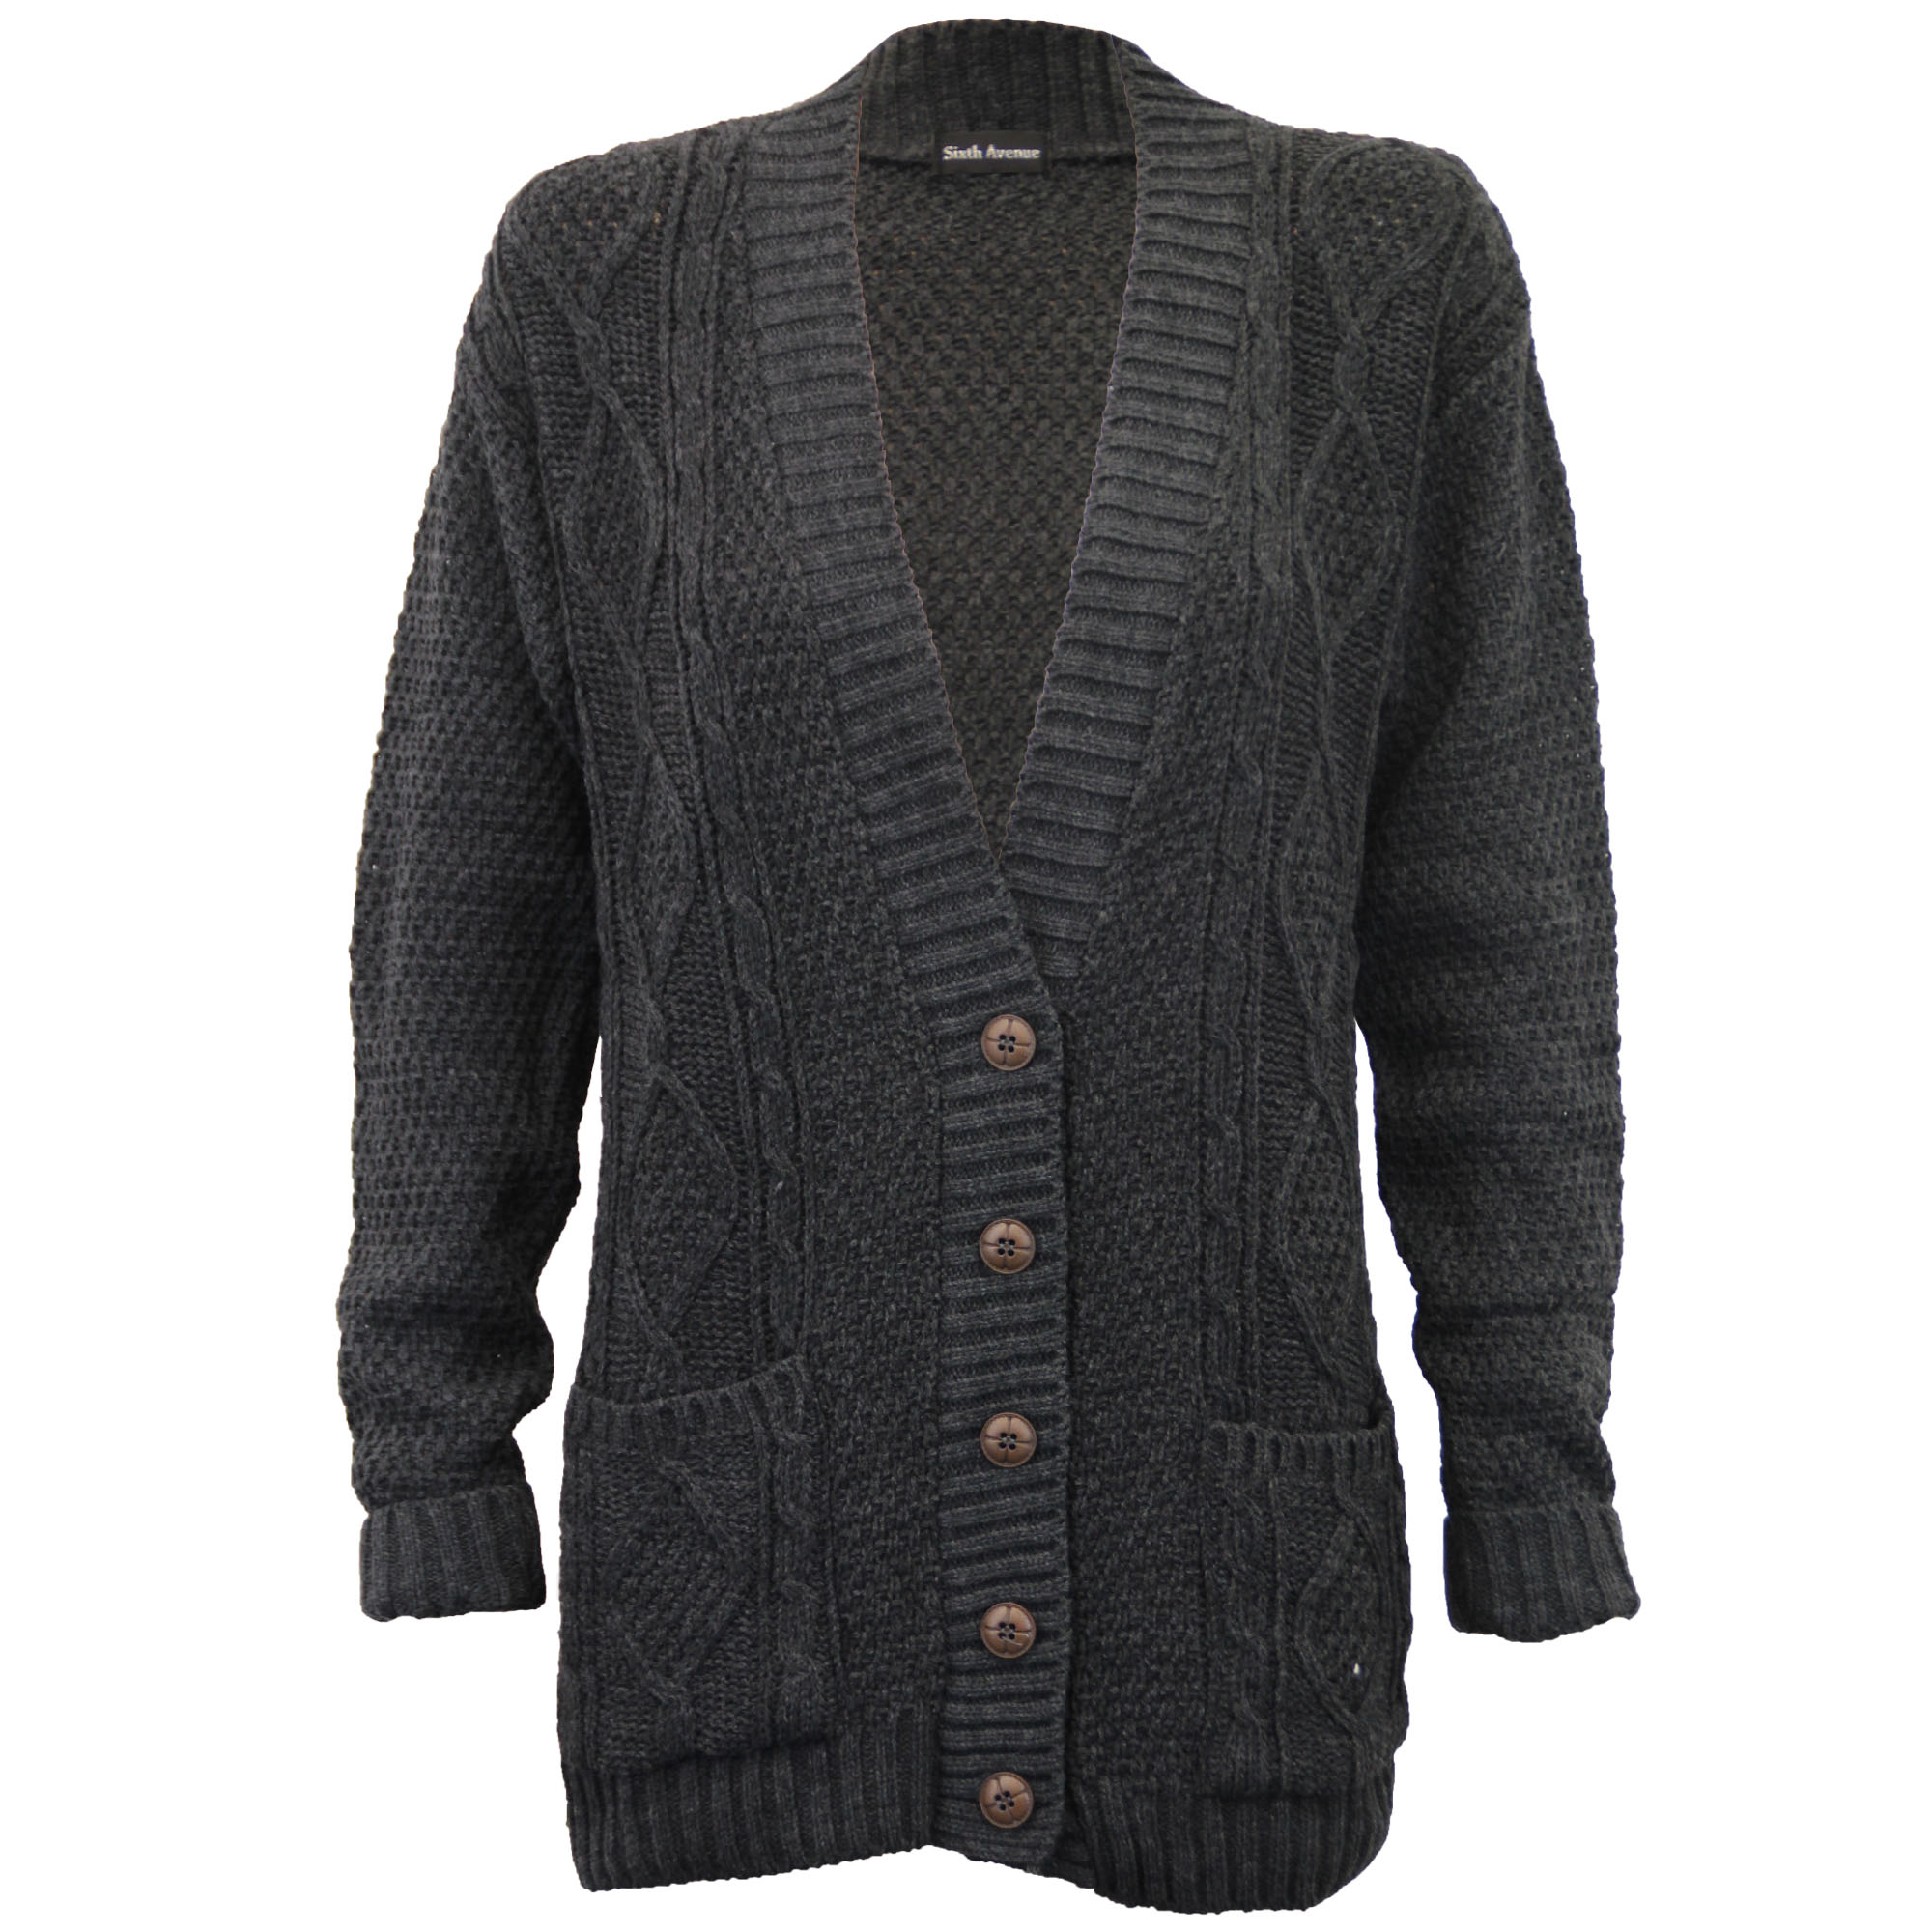 Shop from the world's largest selection and best deals for Women's Chunky/Cable Knit Cardigan Sweaters. Shop with confidence on eBay!